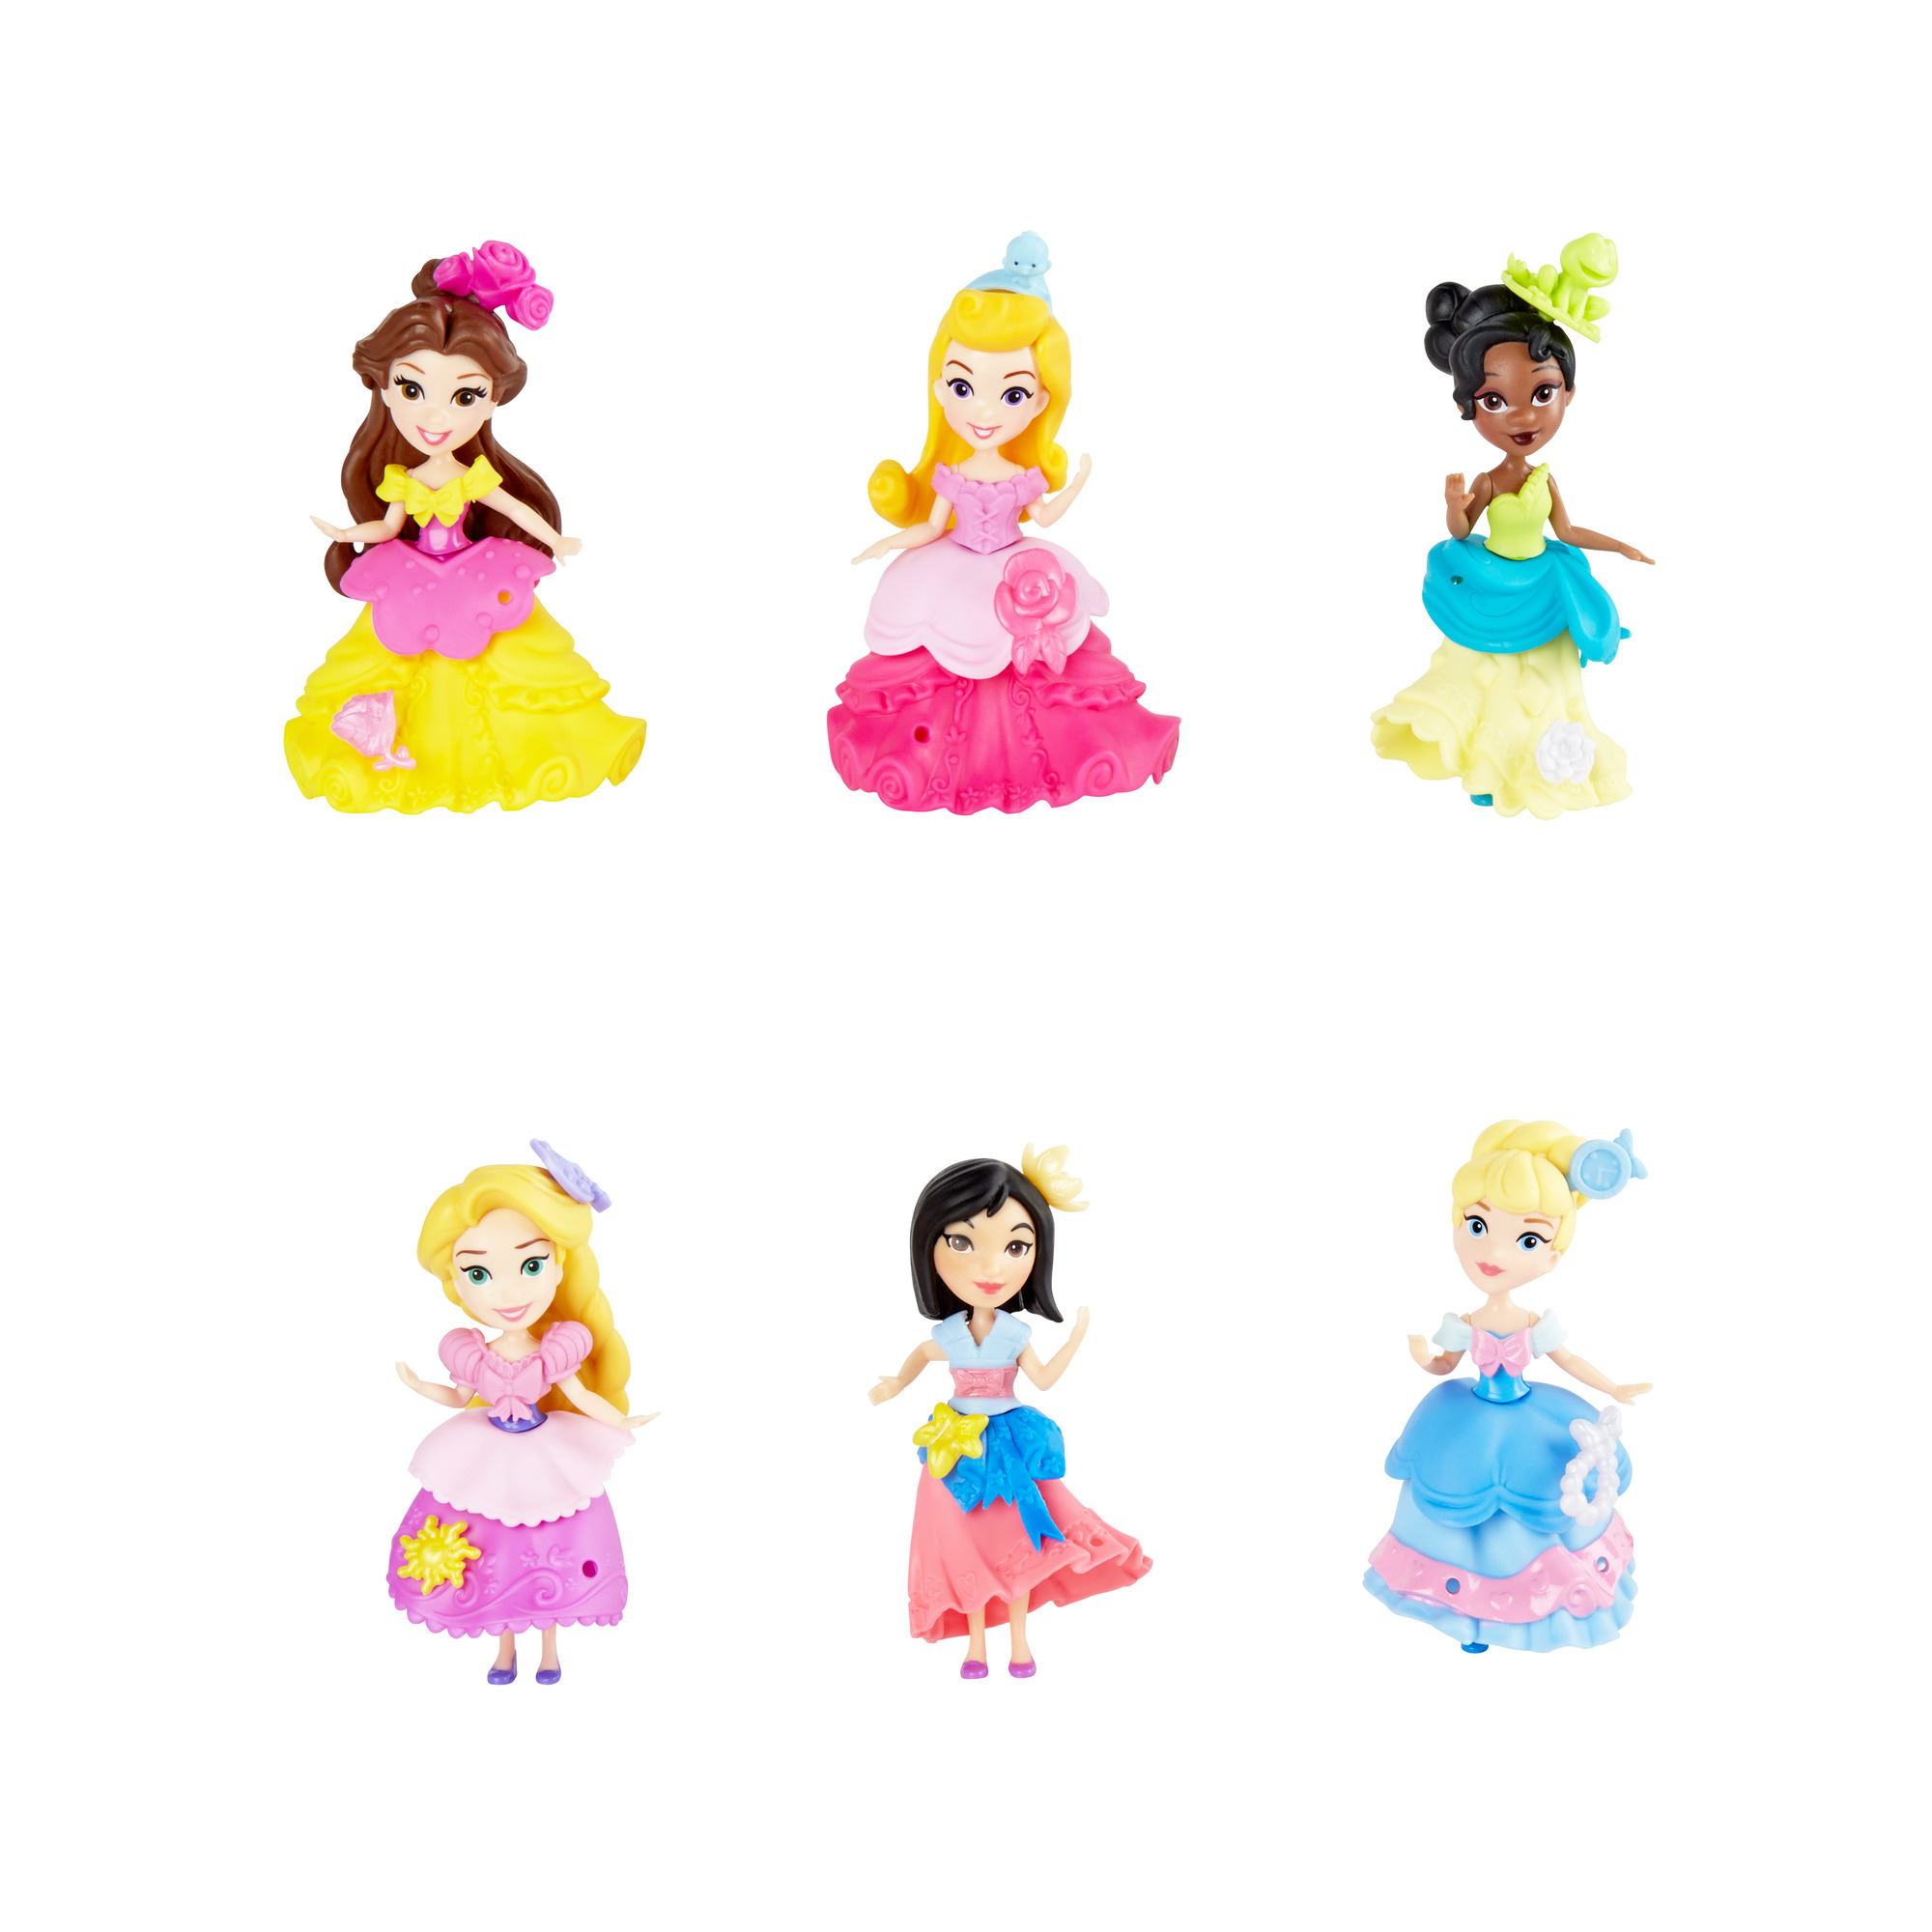 Disney Princess Royal Adventure Collection by Hasbro Inc.